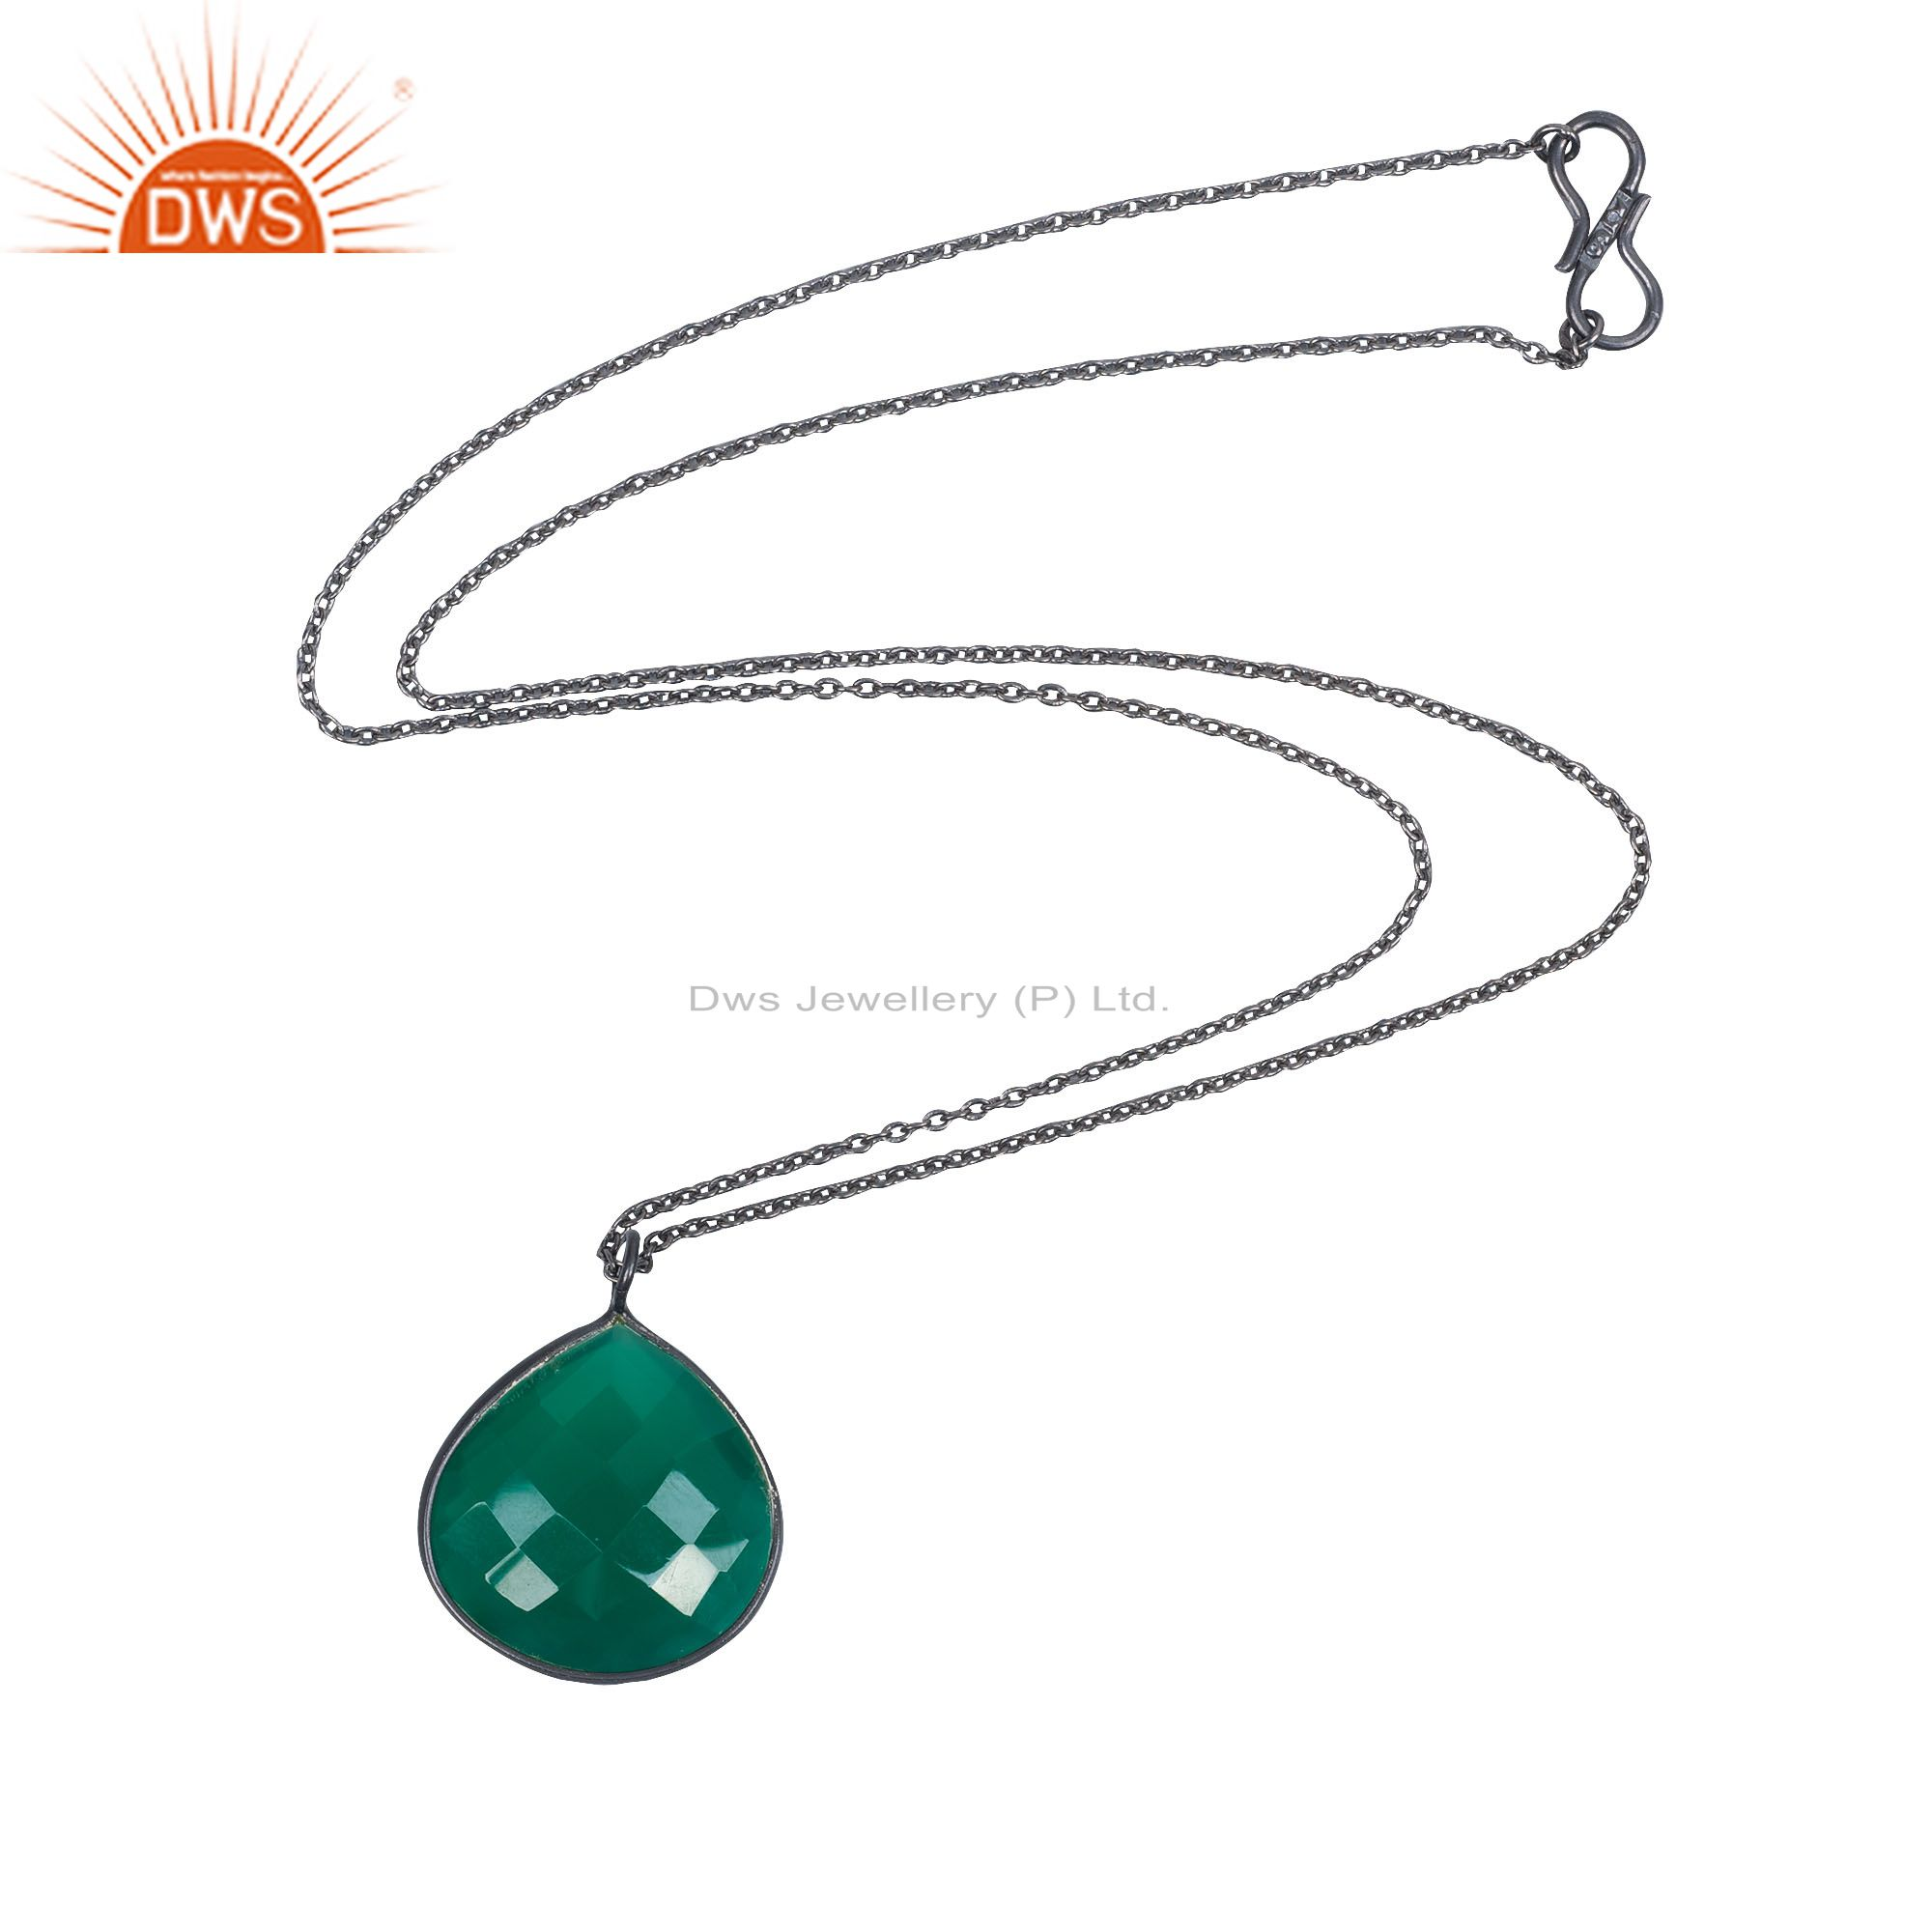 Oxidized solid sterling silver faceted green onyx bezel set pendant with chain